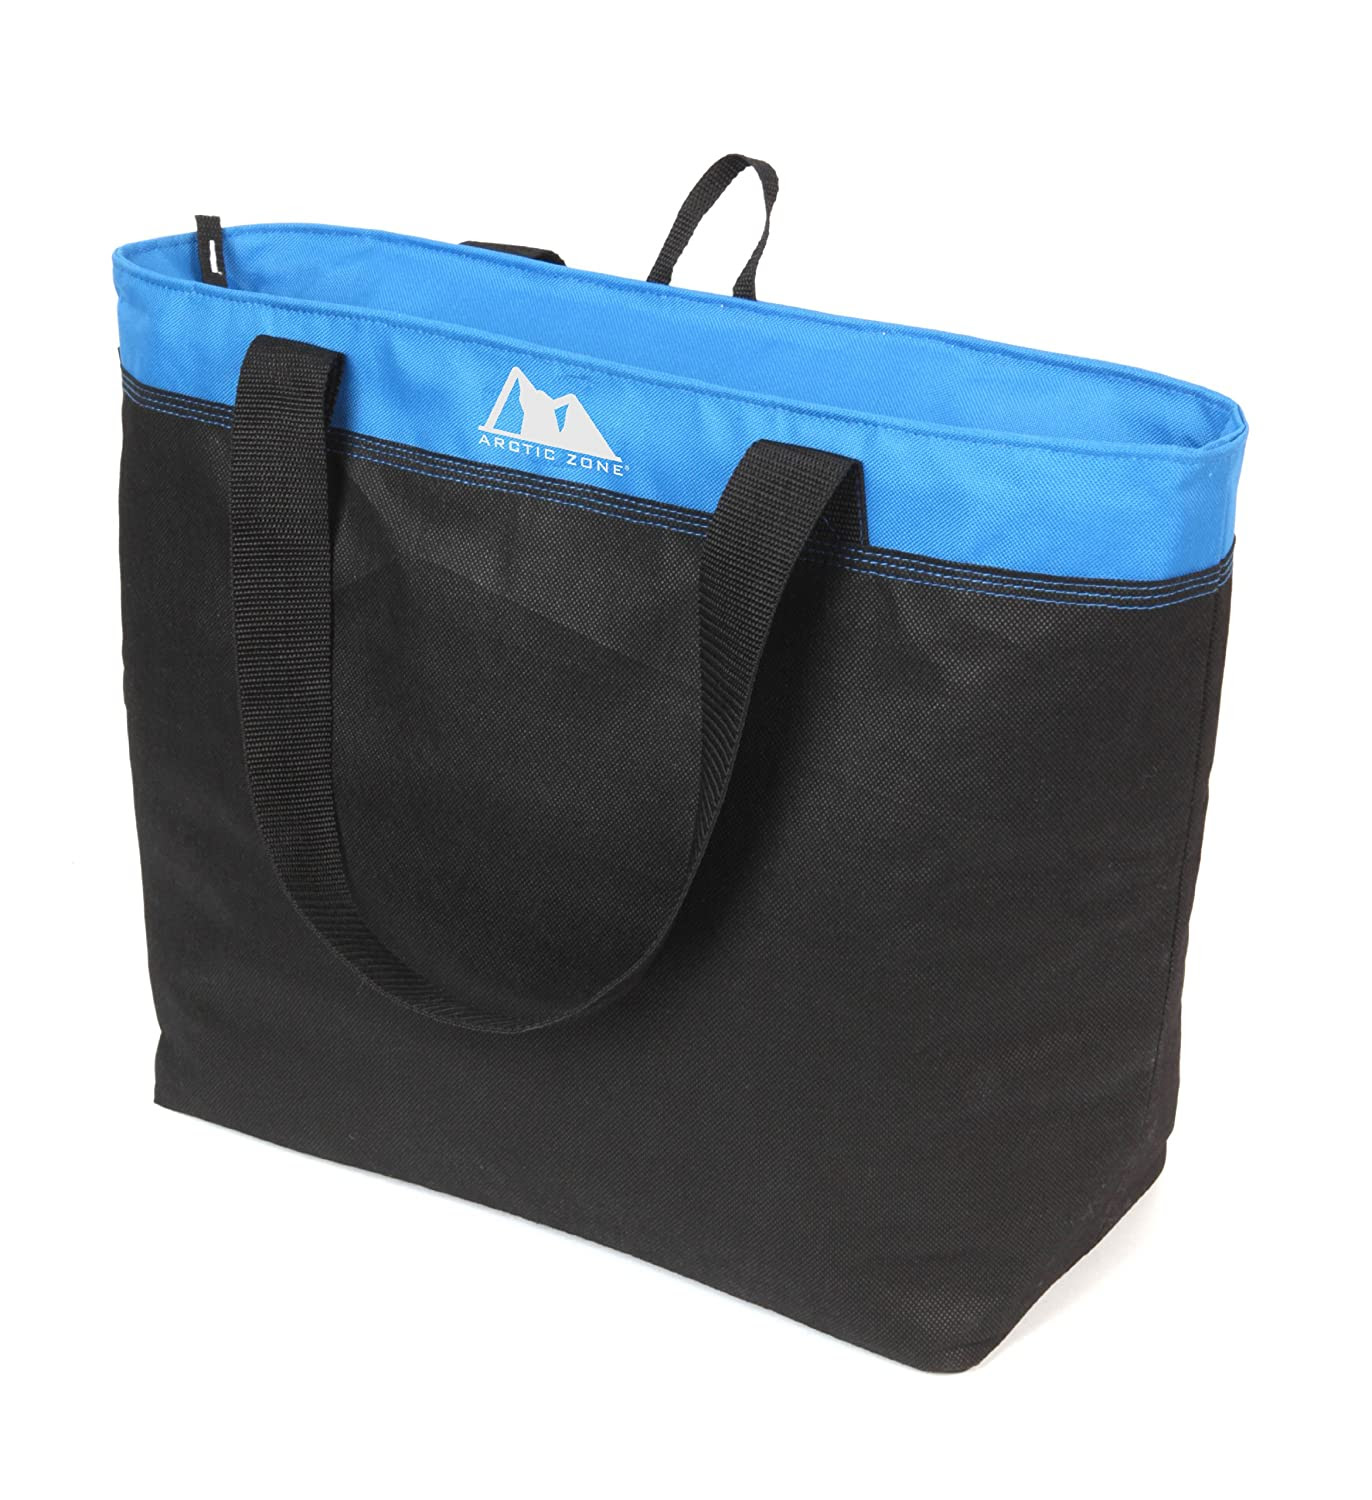 thermal tote